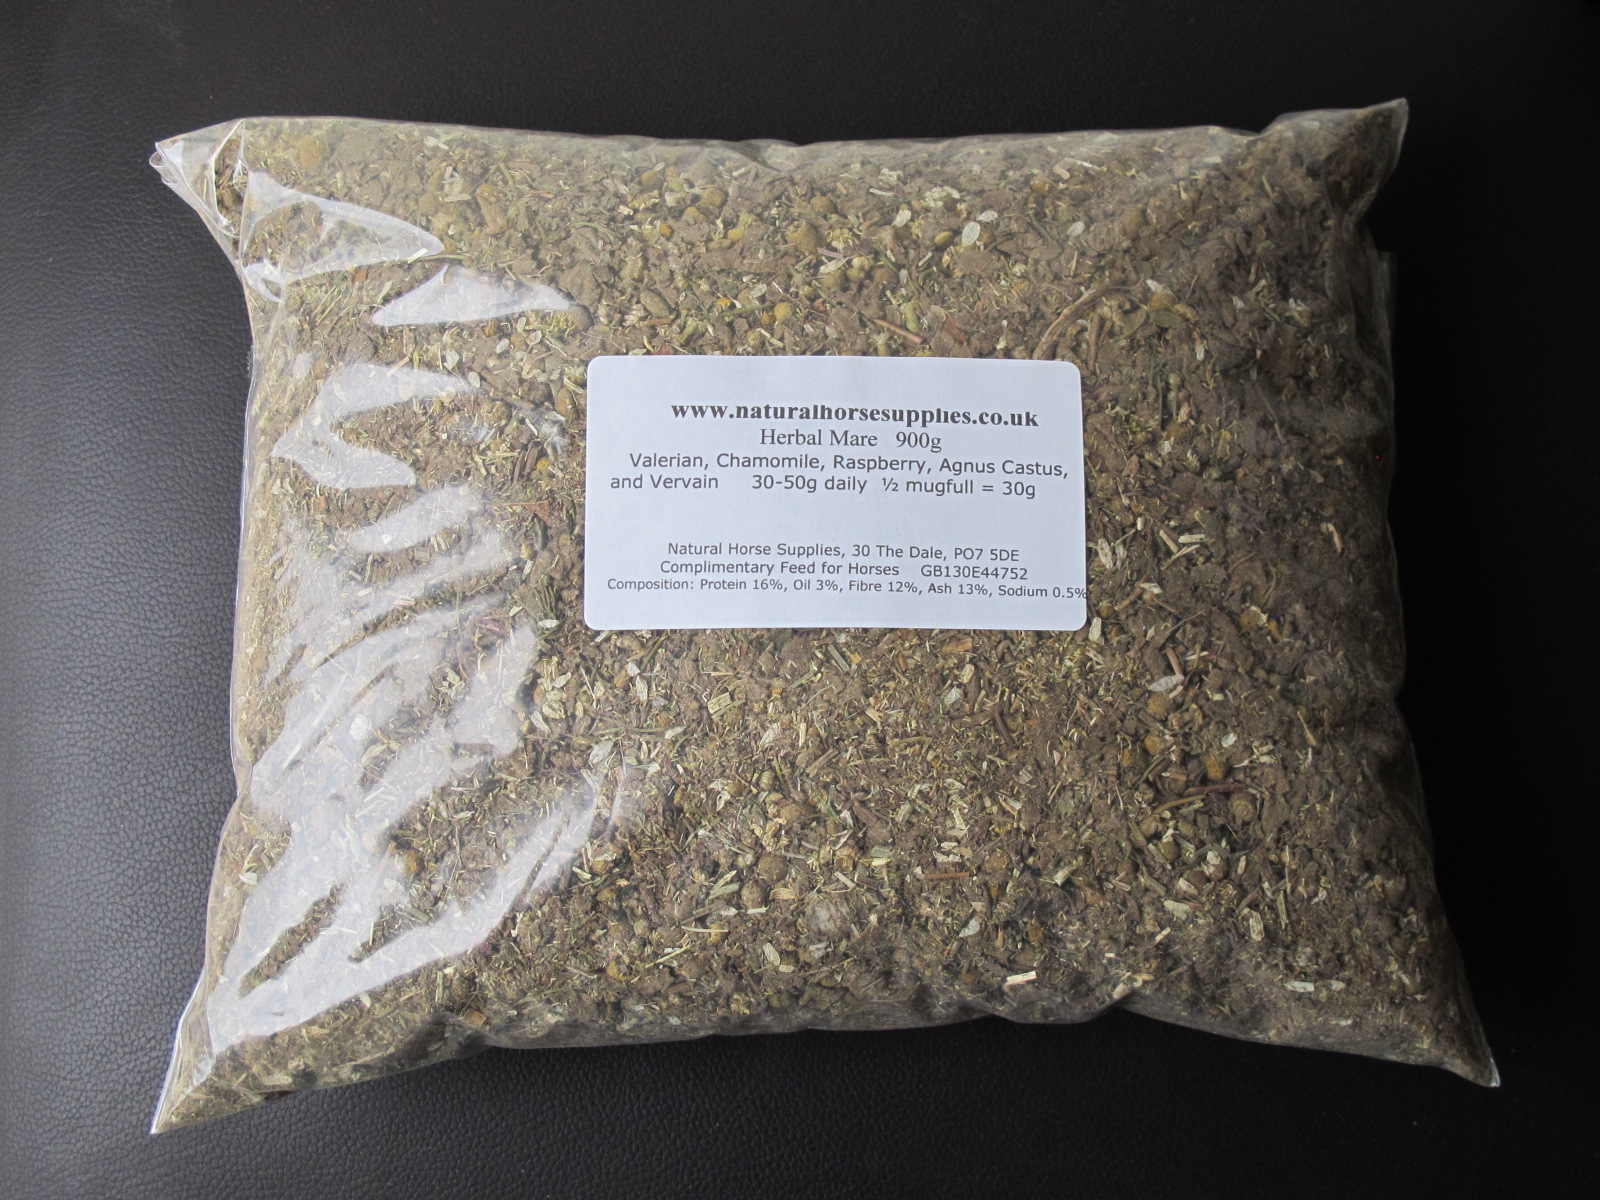 Herbal Mare 900g